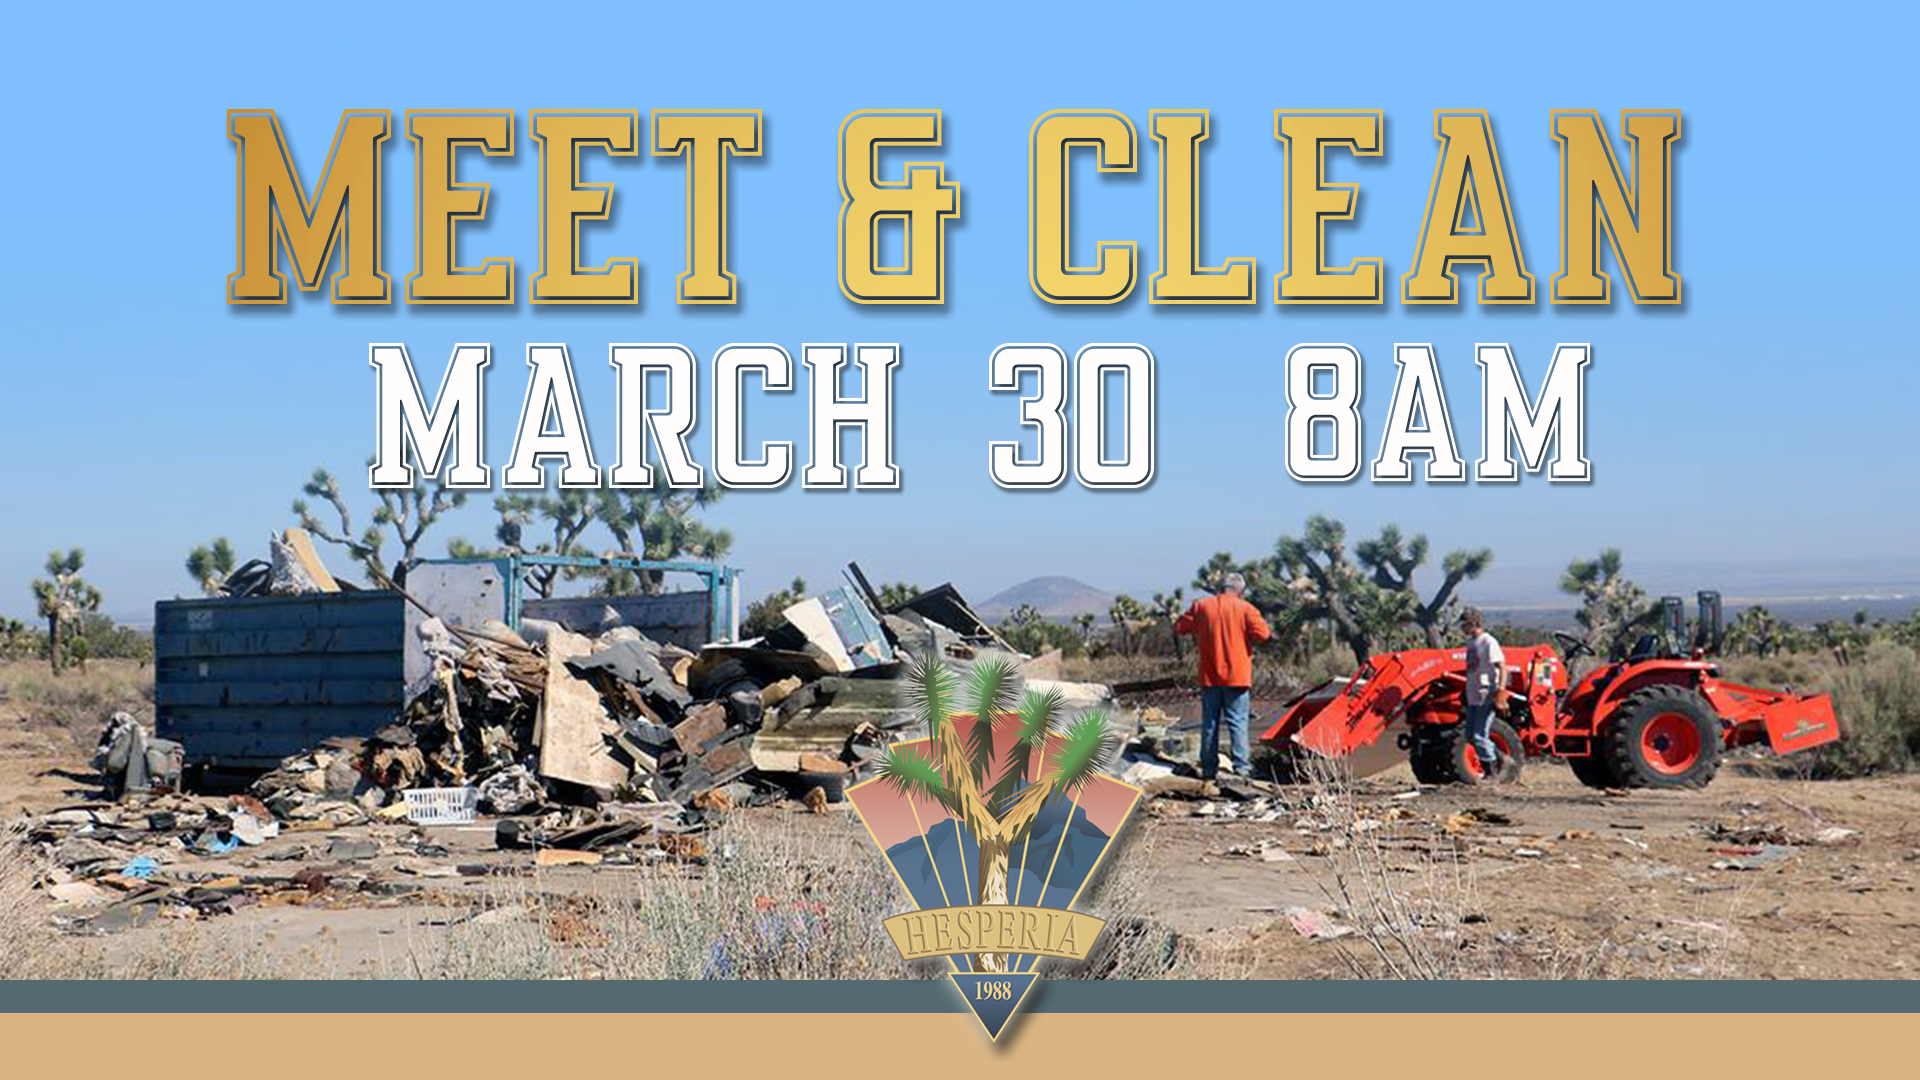 Meet-and-Clean-Facebook-Event-Header-MARCH-2019